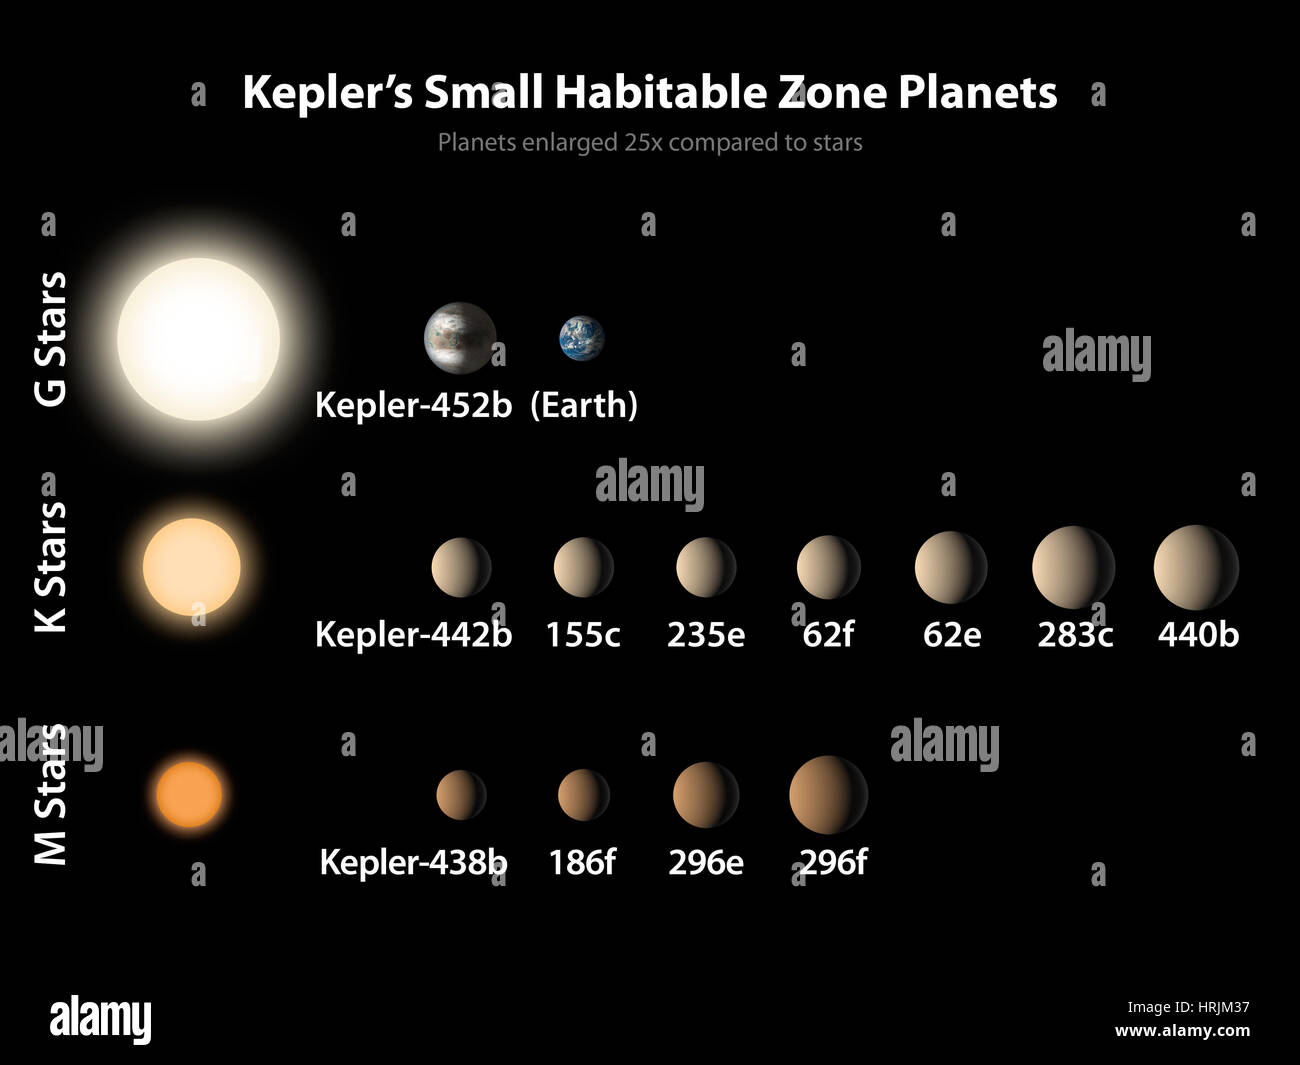 Exoplanets, Small Habitable Zone Planets - Stock Image